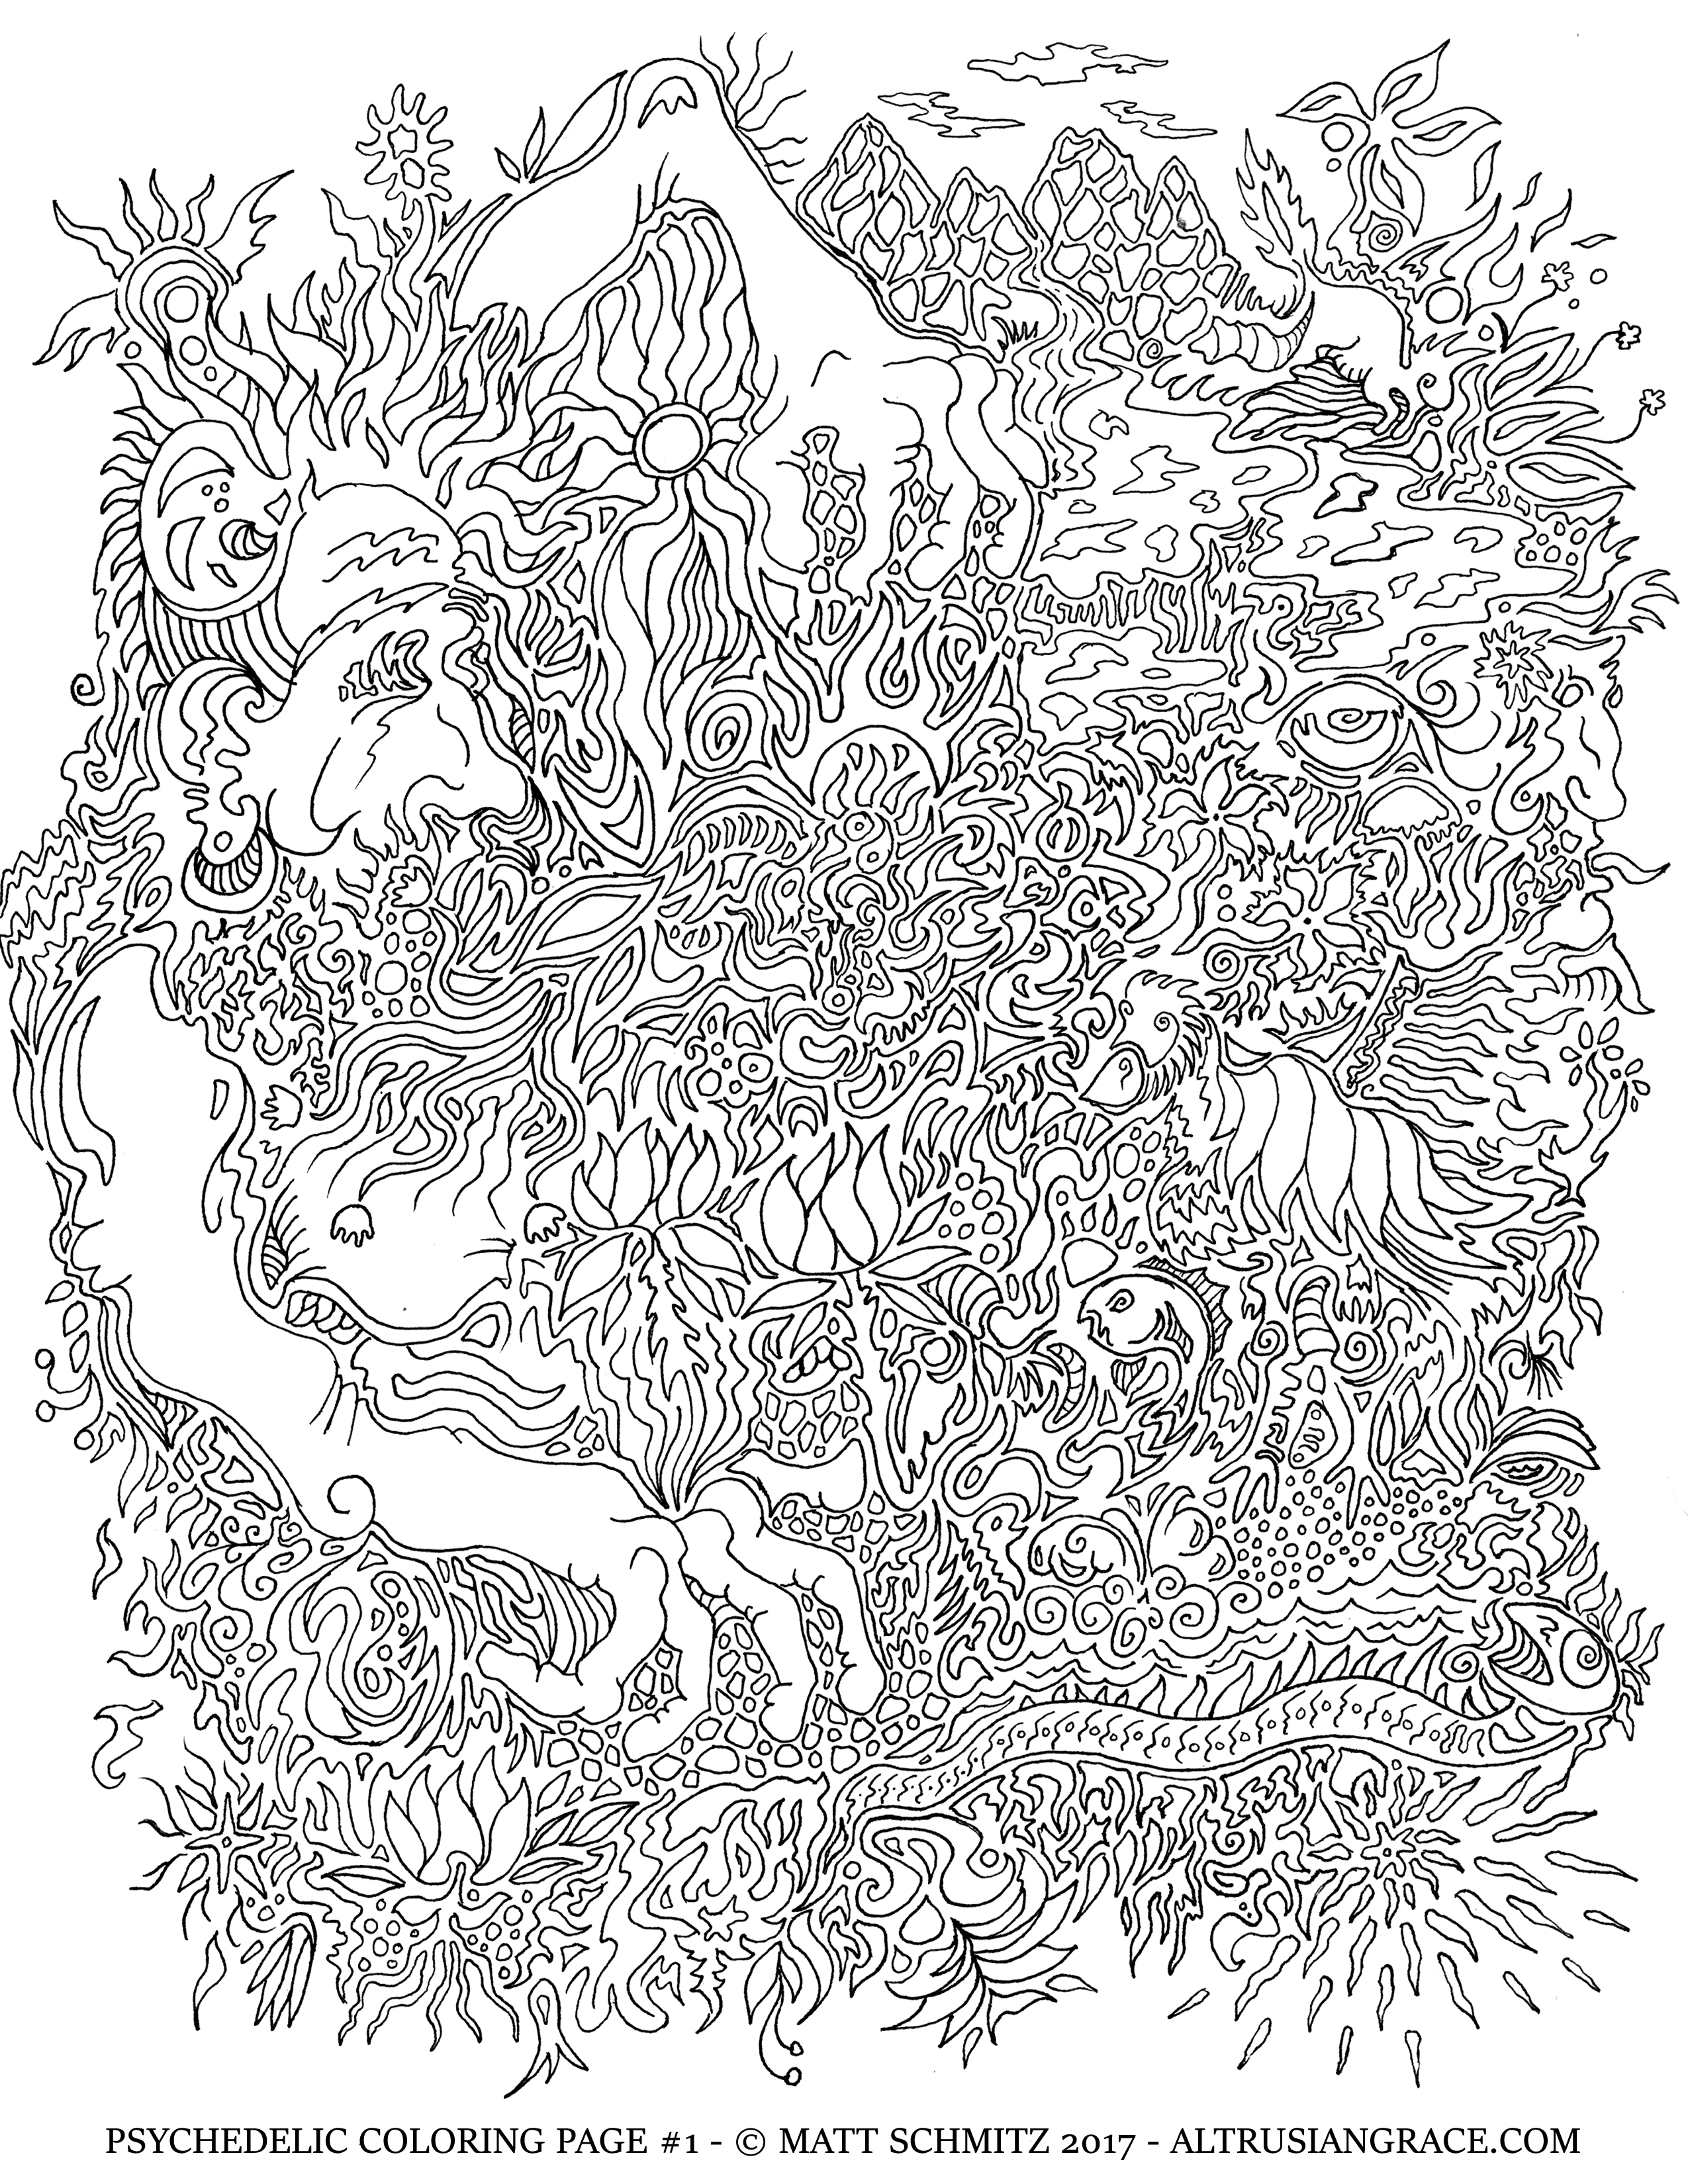 psychedelic coloring pages Psychedelic Coloring Page #1 – The Grimerica Show psychedelic coloring pages